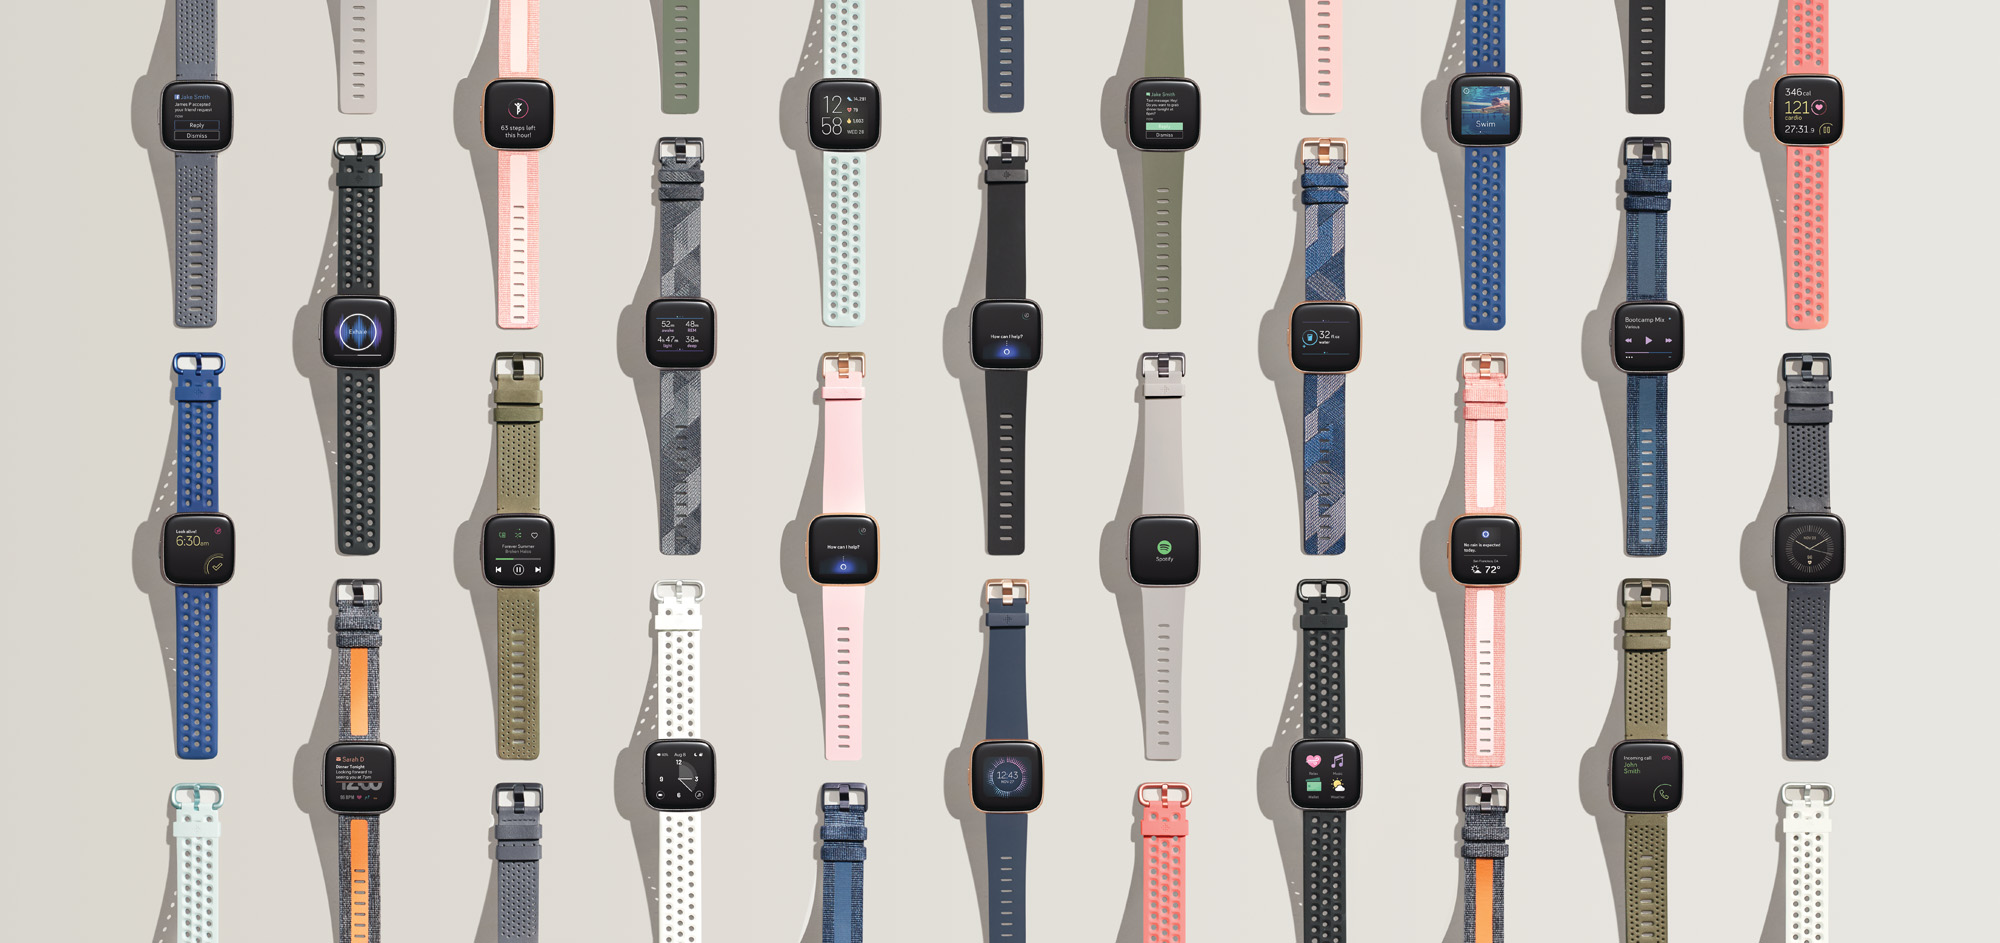 FitBit Versa 2 - Image provided by FitBit